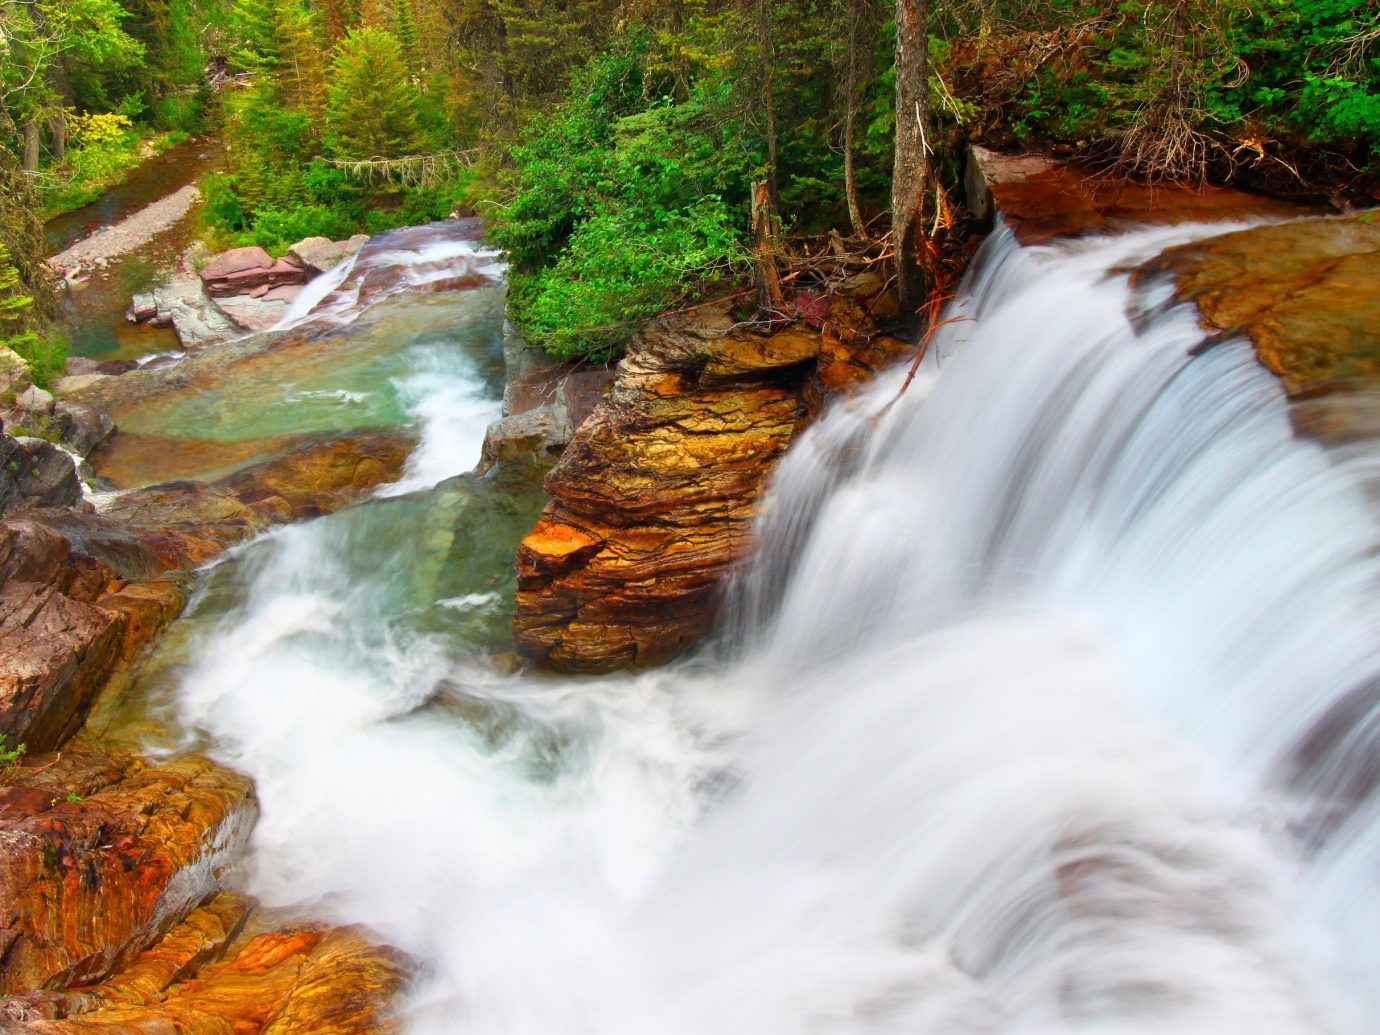 Trip Ideas Nature Waterfall water tree outdoor stream creek body of water watercourse River rapid rock water feature leaf season autumn Forest wasserfall wood surrounded